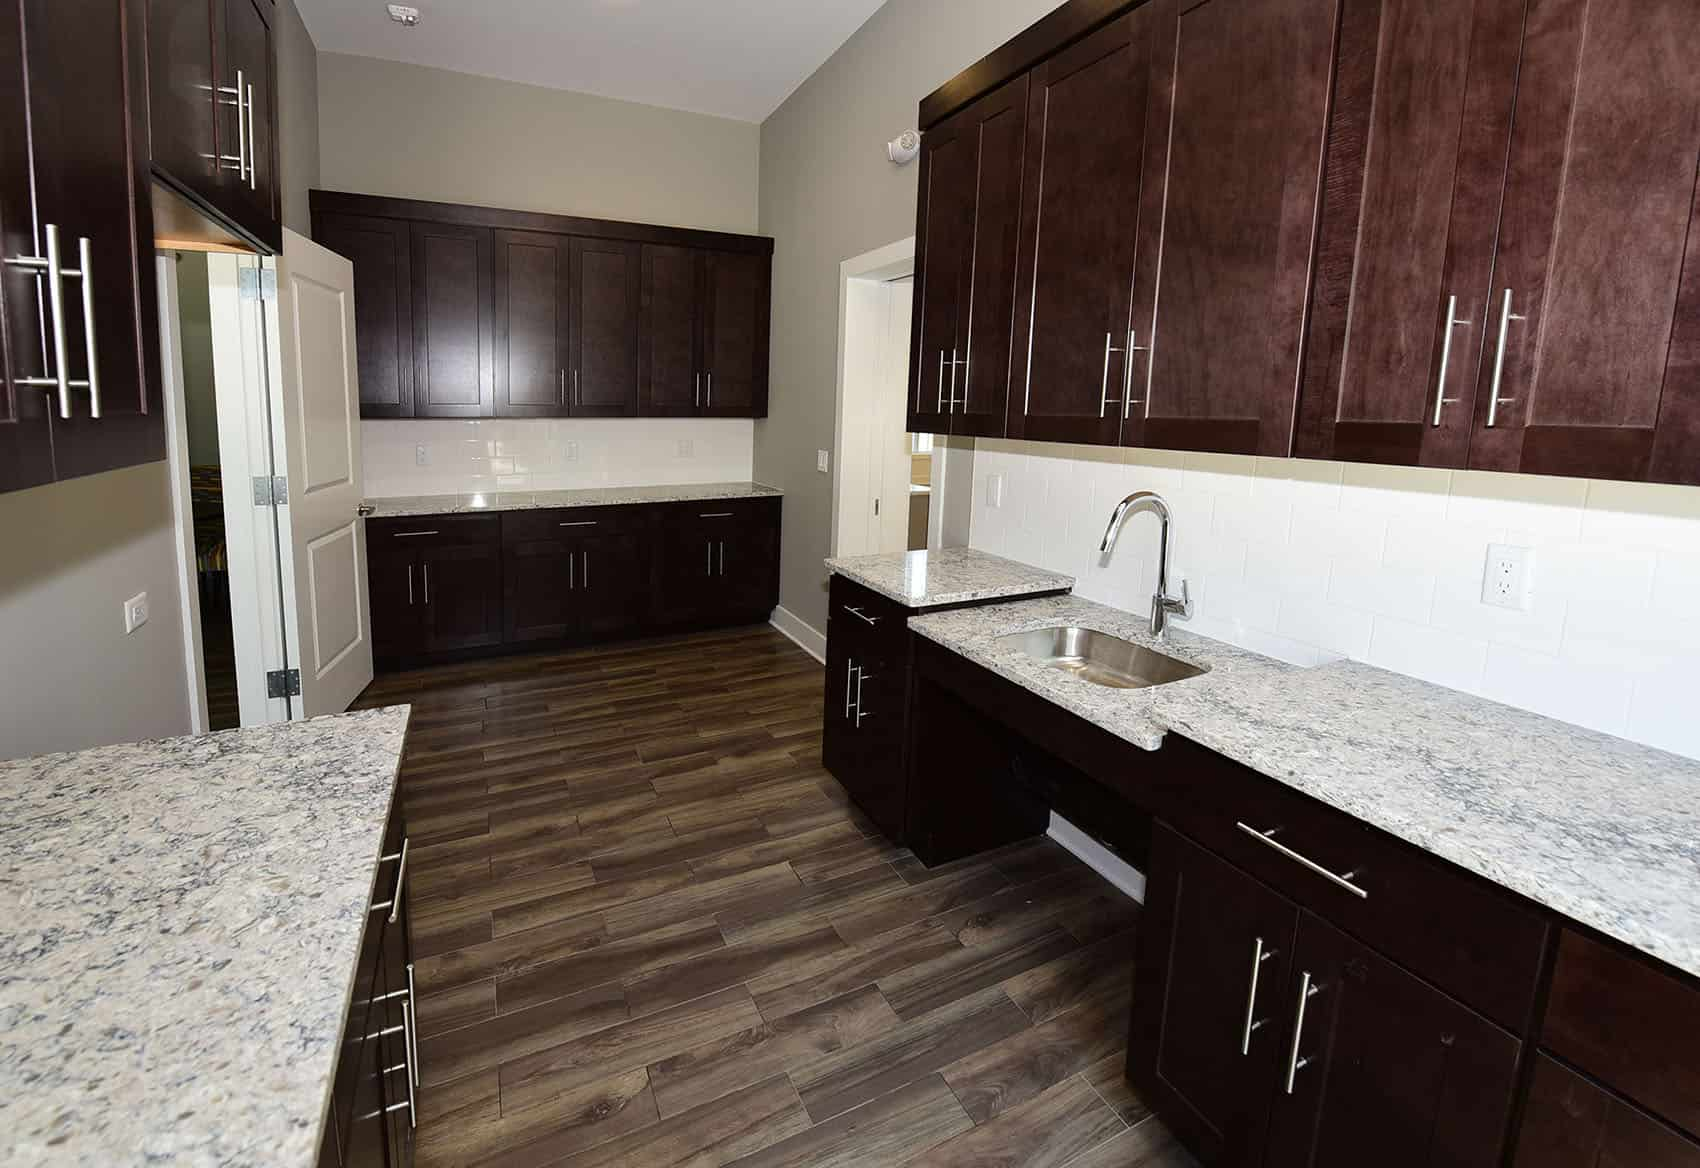 Kitchen area in the clubhouse with brown cabinets and granite countertops